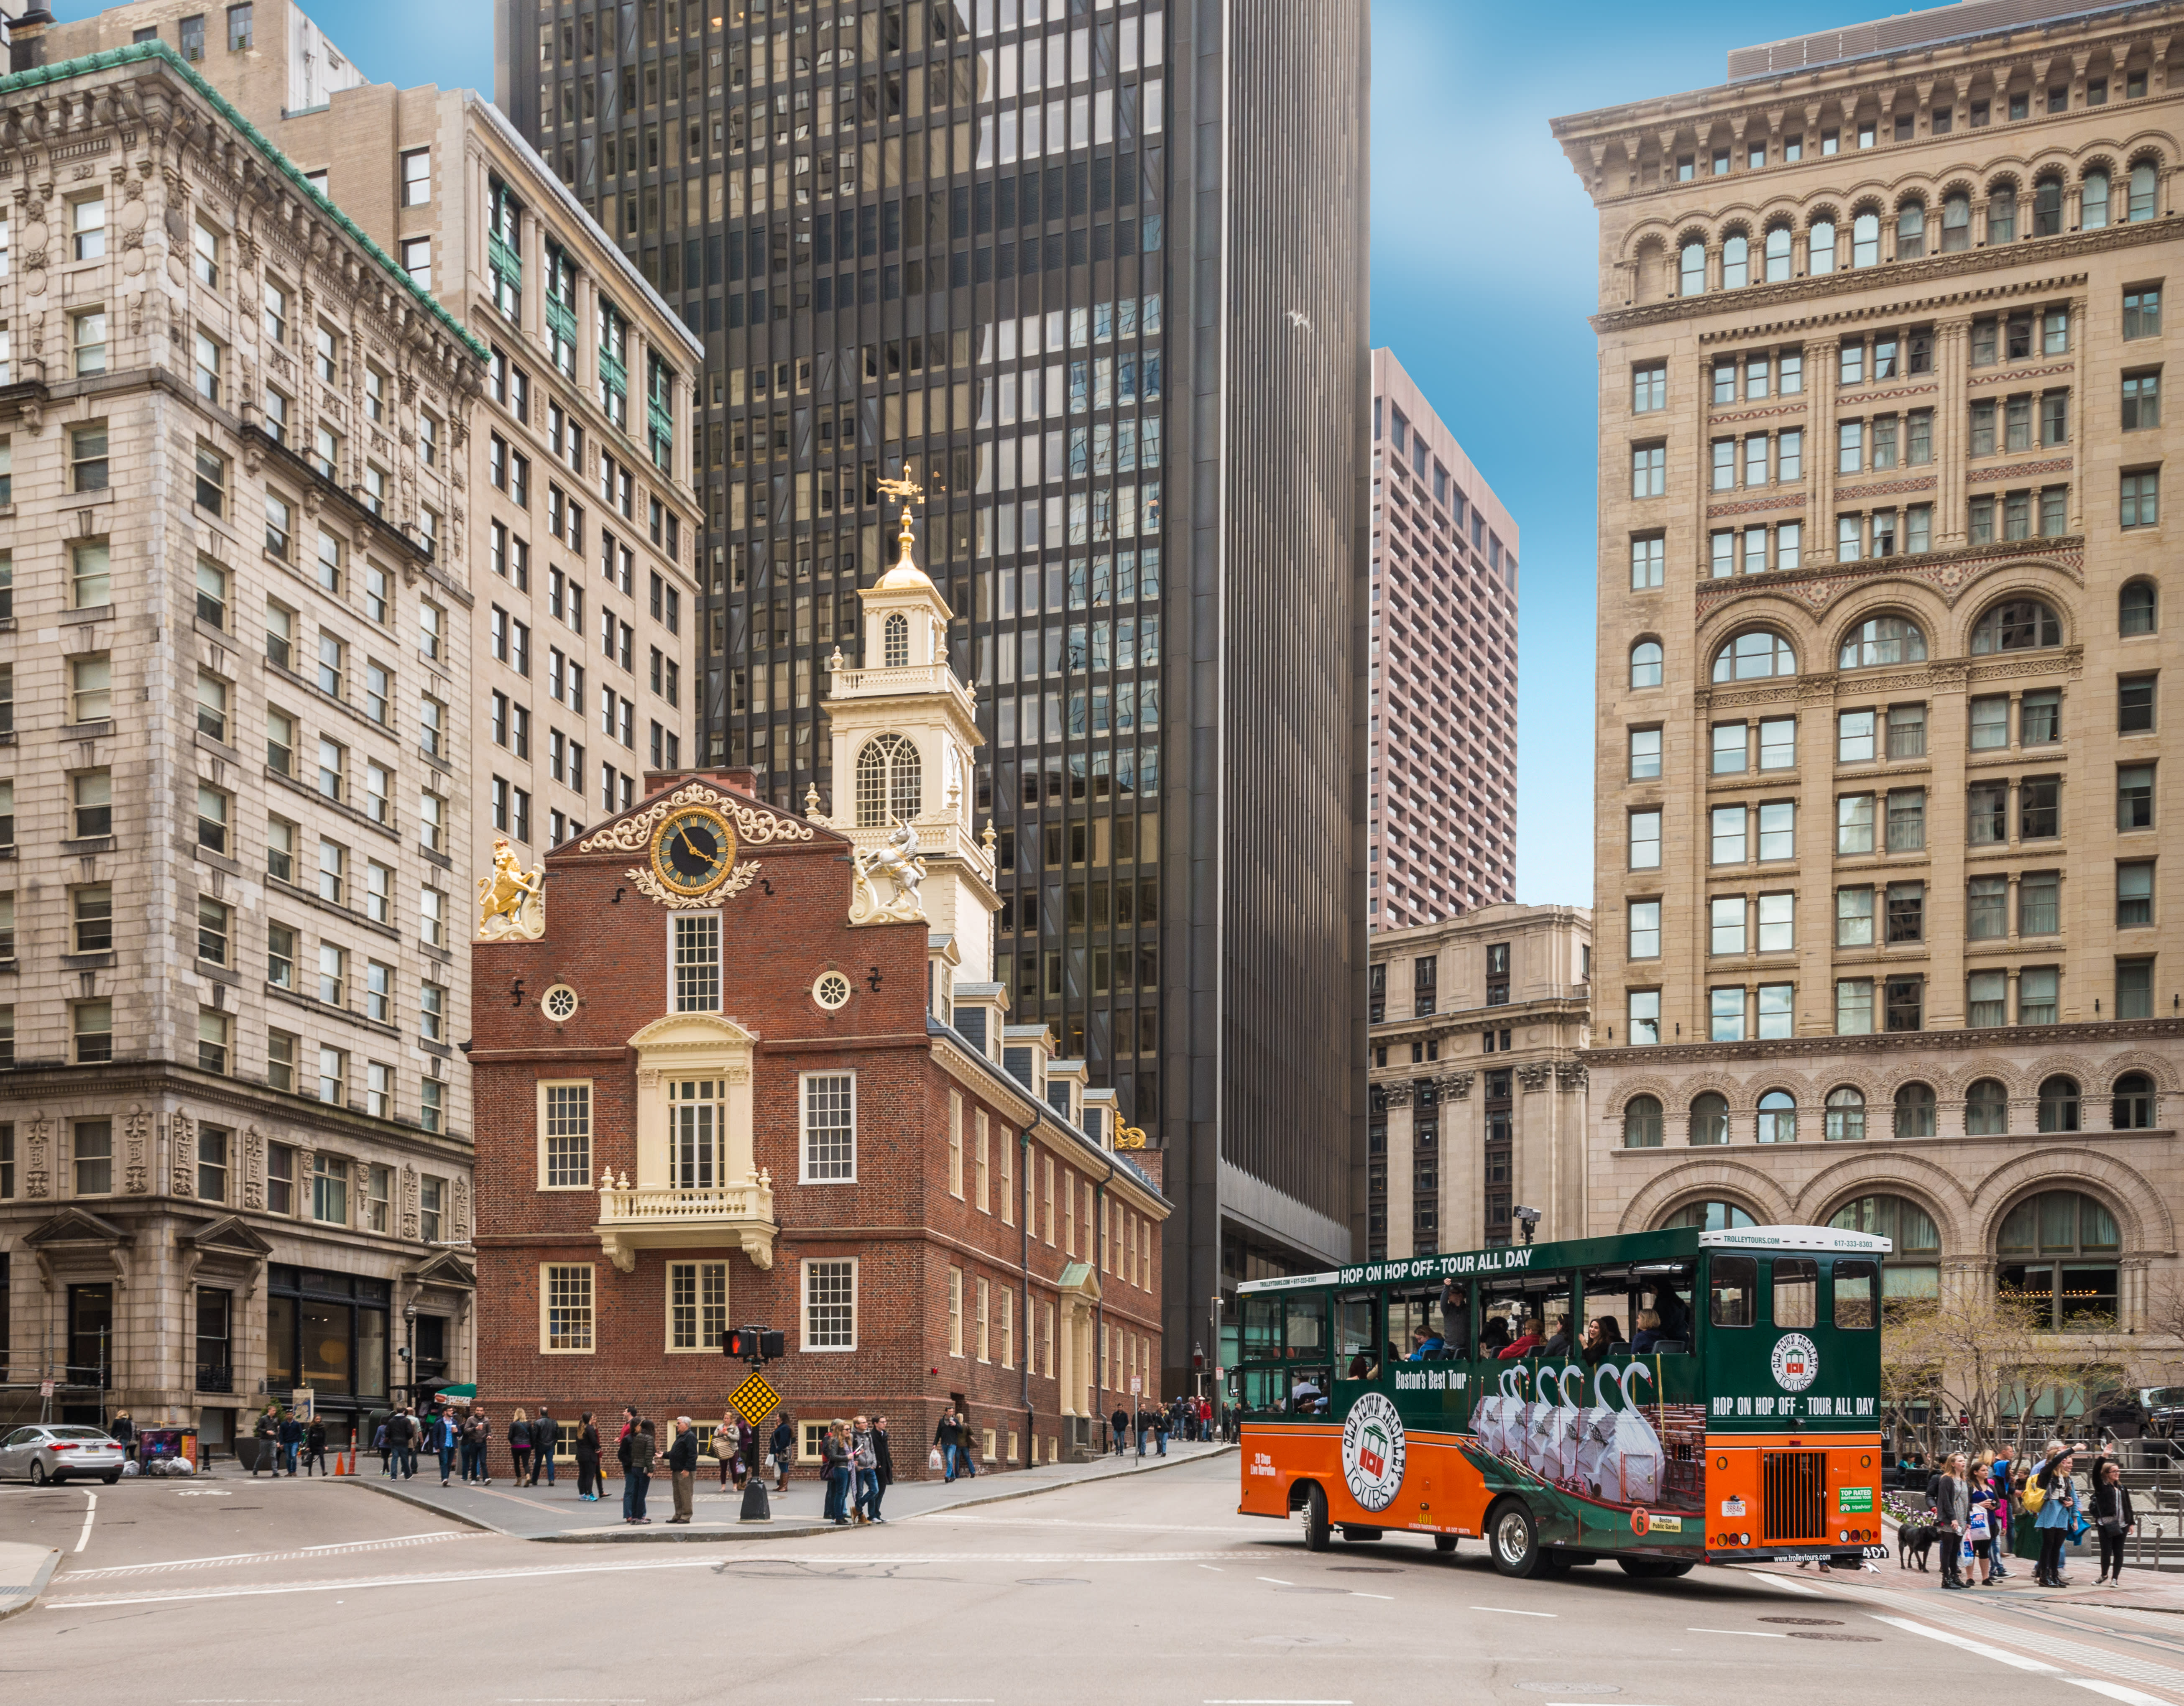 old town trolley tours boston map Old Town Trolley Tours Of Boston old town trolley tours boston map